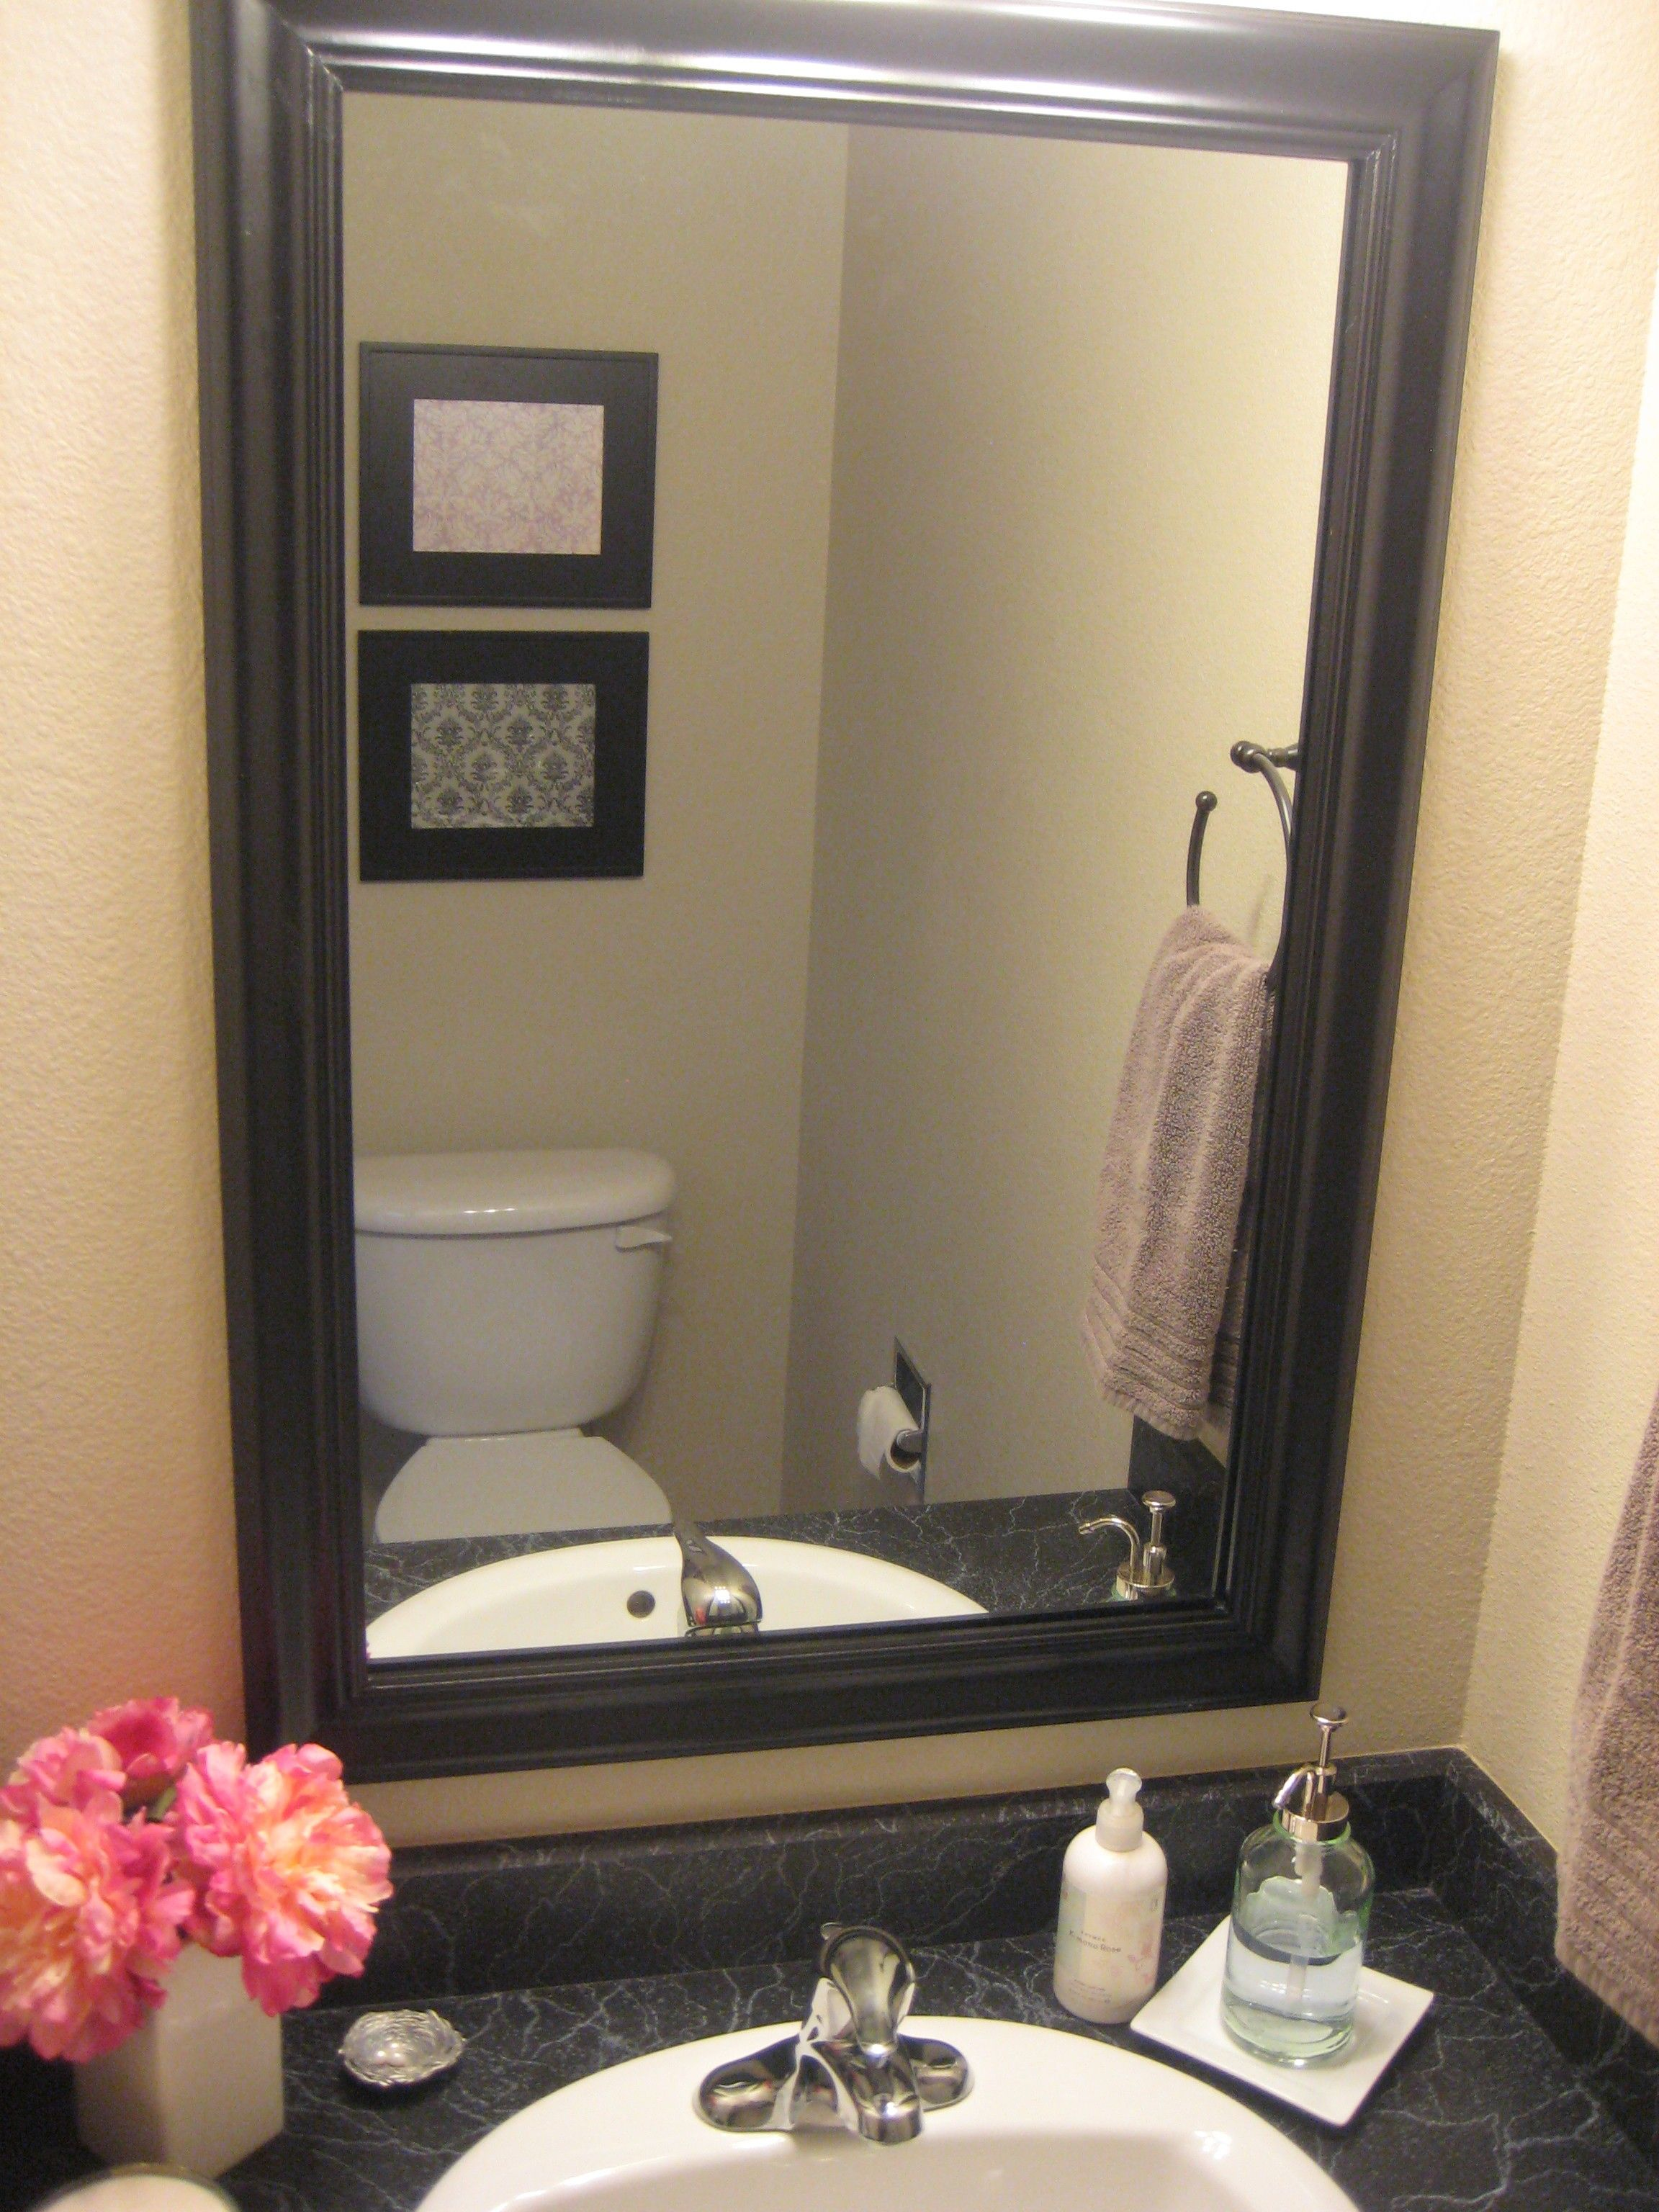 Bathroom Interior Height Wall Mirror With Black Wooden Frame Attached Light Yellow Color Framed Mirrors For Bathrooms